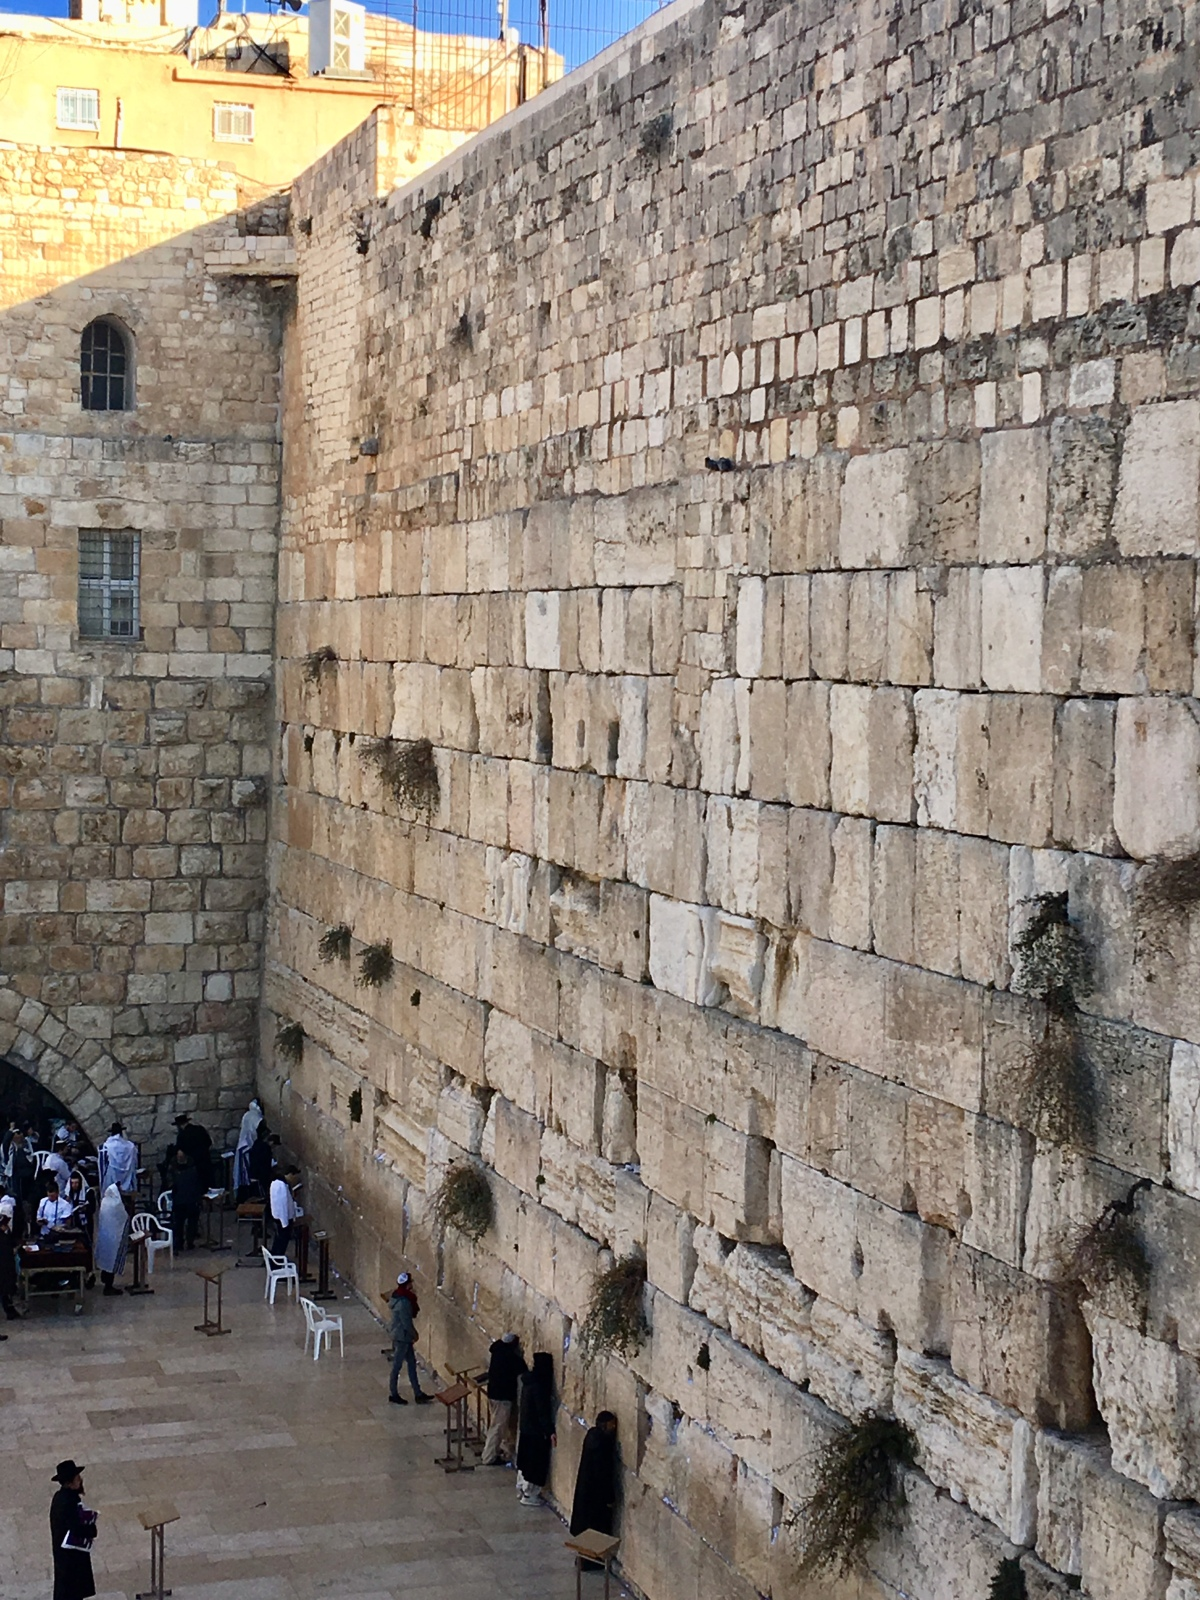 Day 185: Jerusalem- The Holy Land